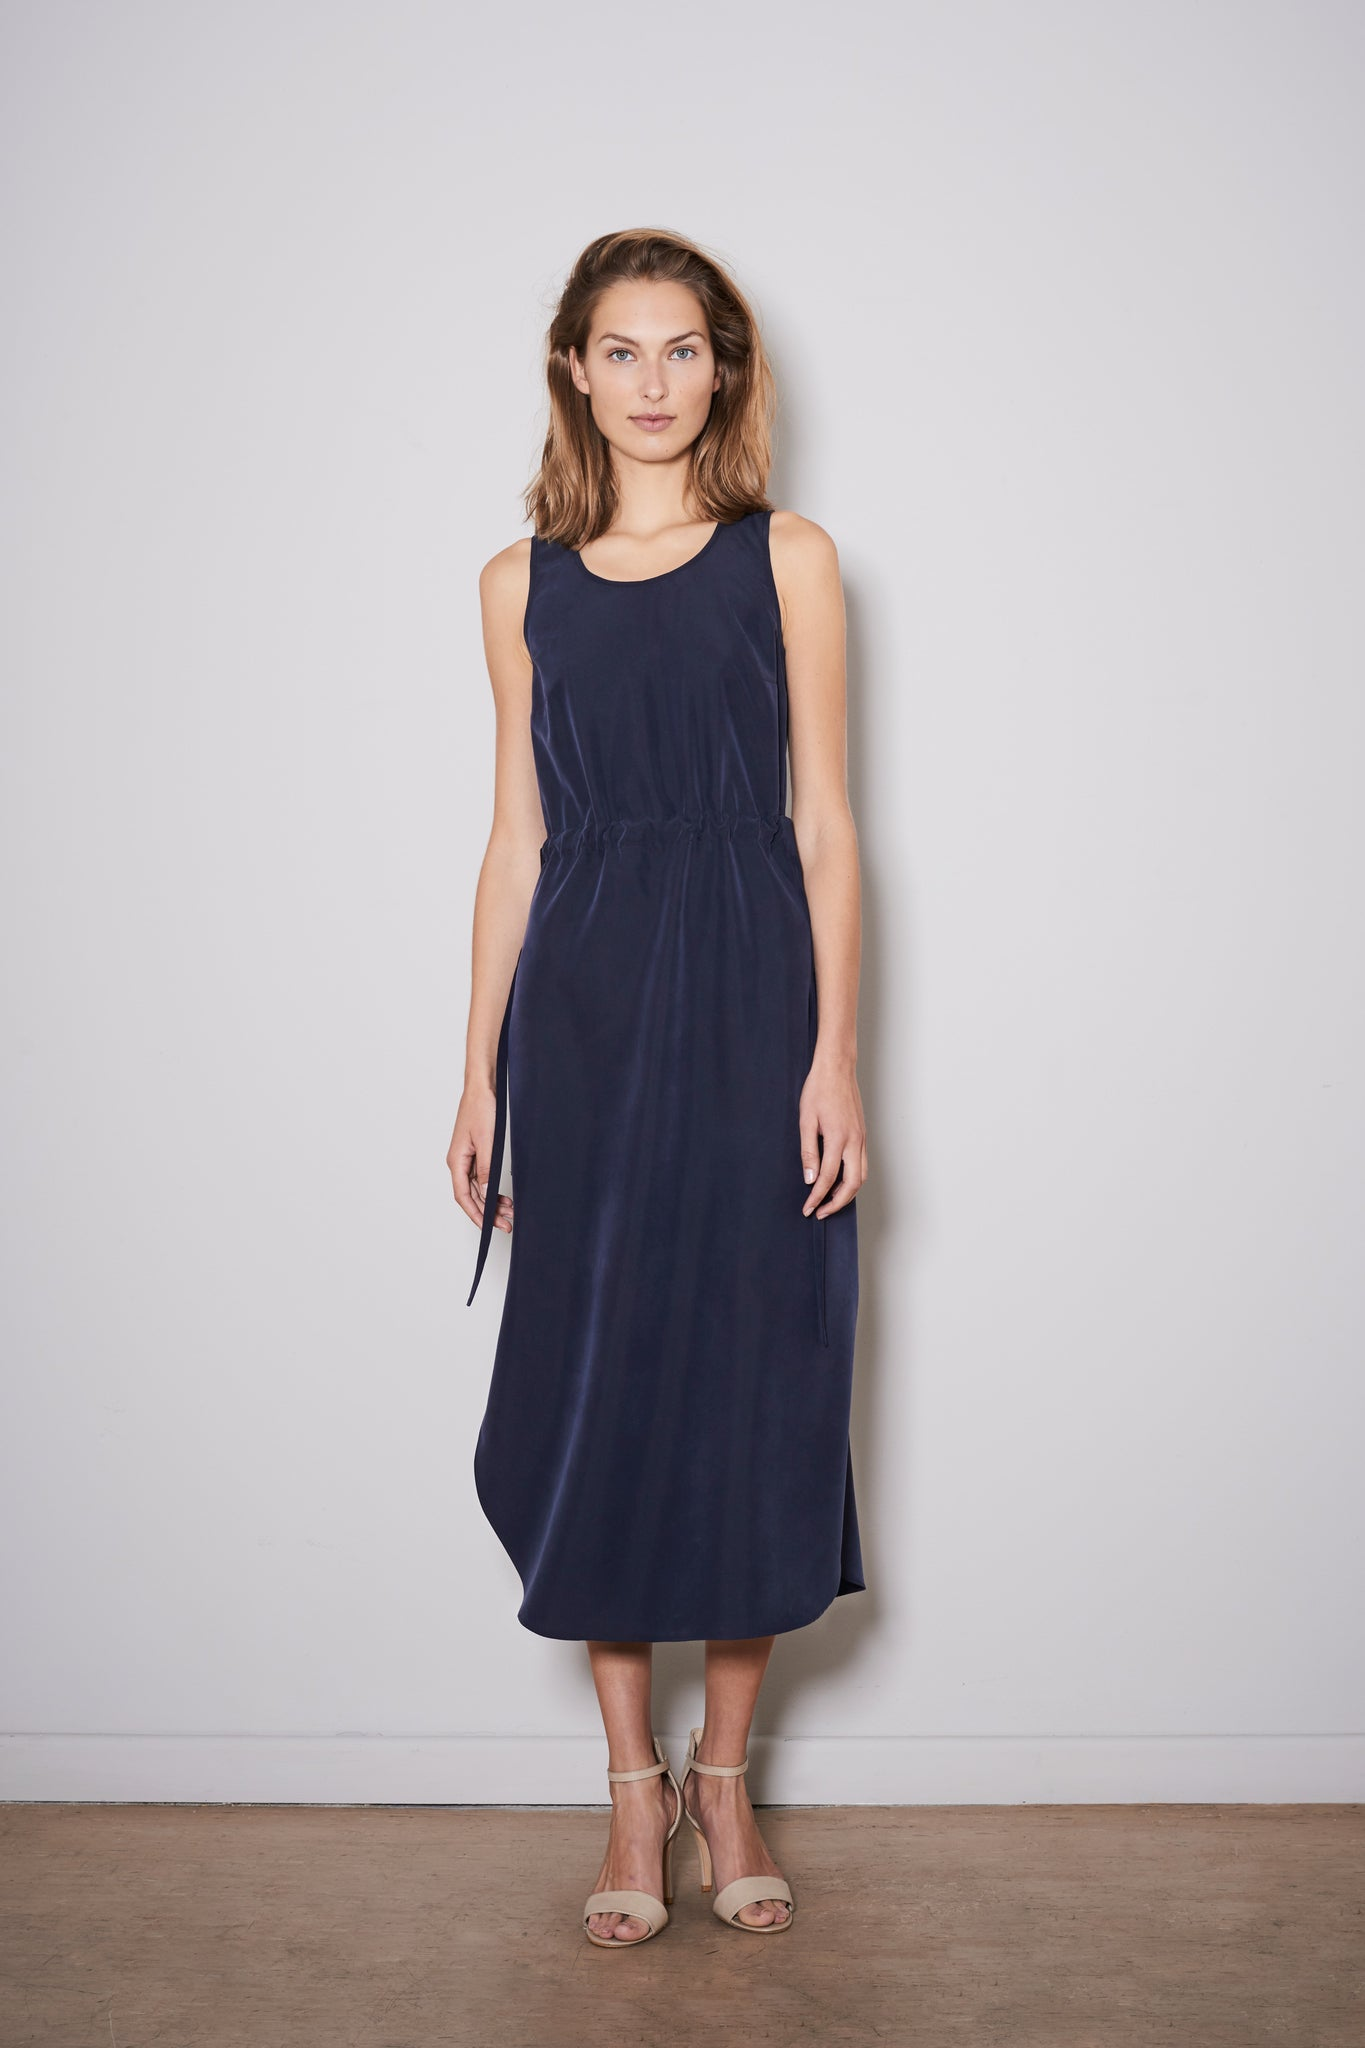 ZAVIAL DRESS dark blue modal